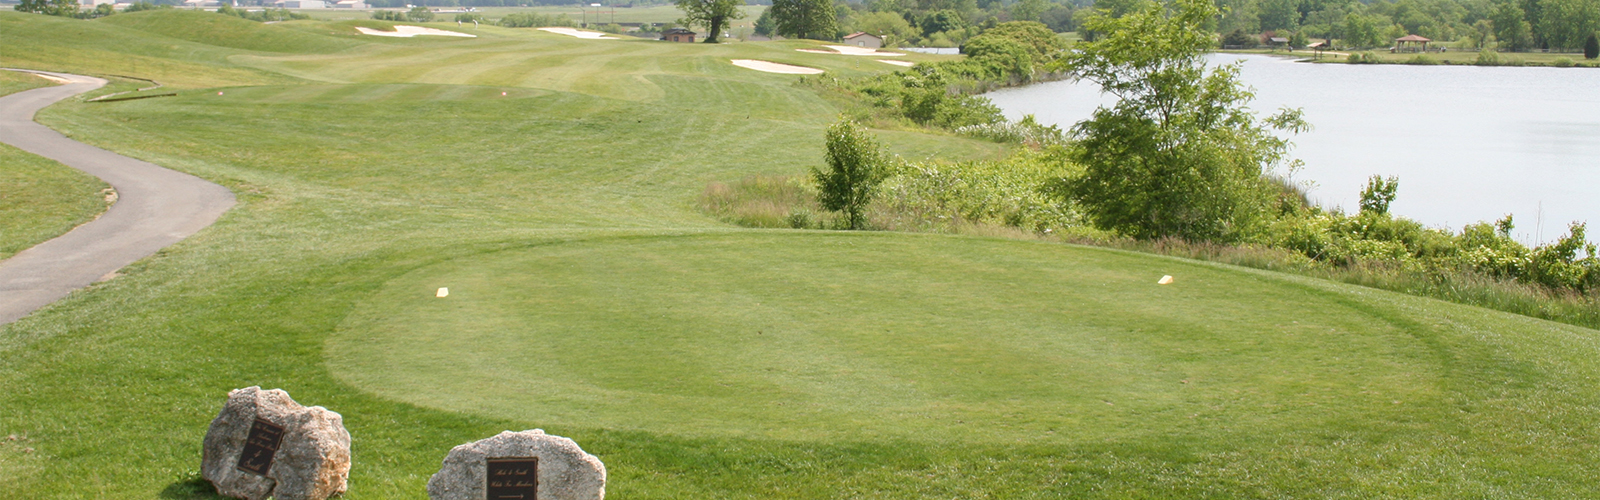 Golf-Tournament-Location-In-Maryland-Virginia-Washington-DC